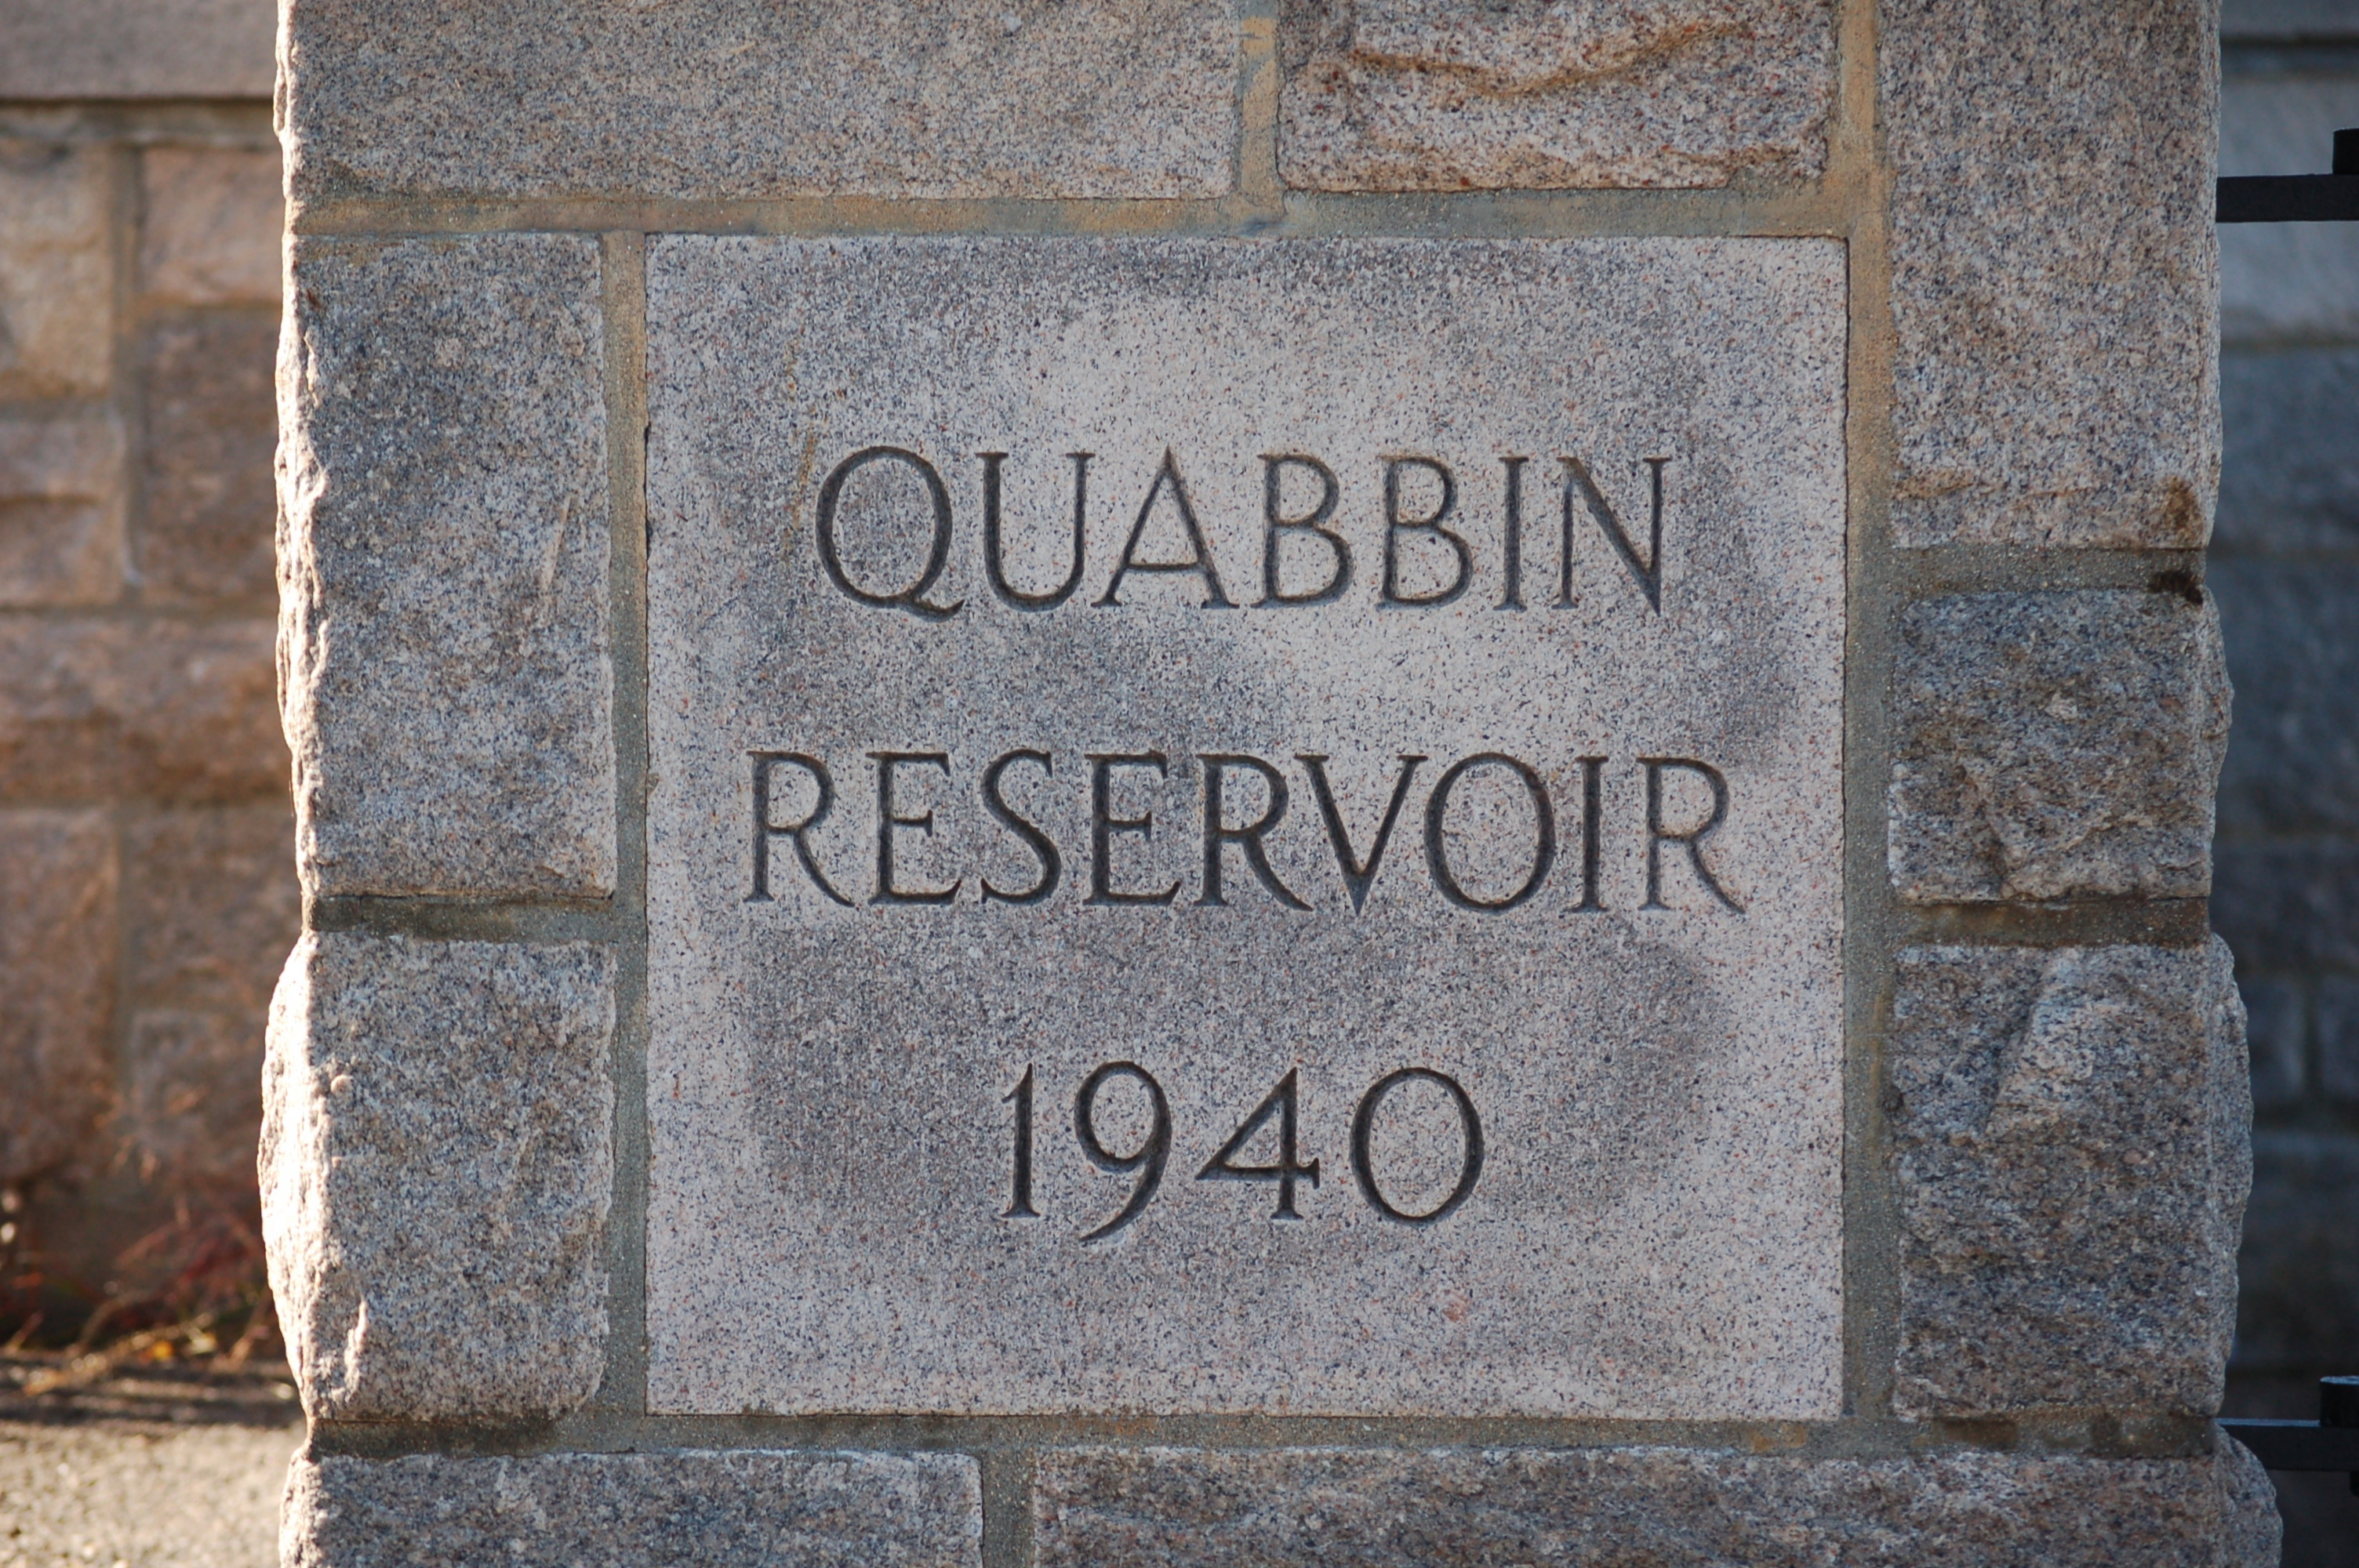 File:Quabbin Reservoir Stone Sign.jpg - Wikipedia